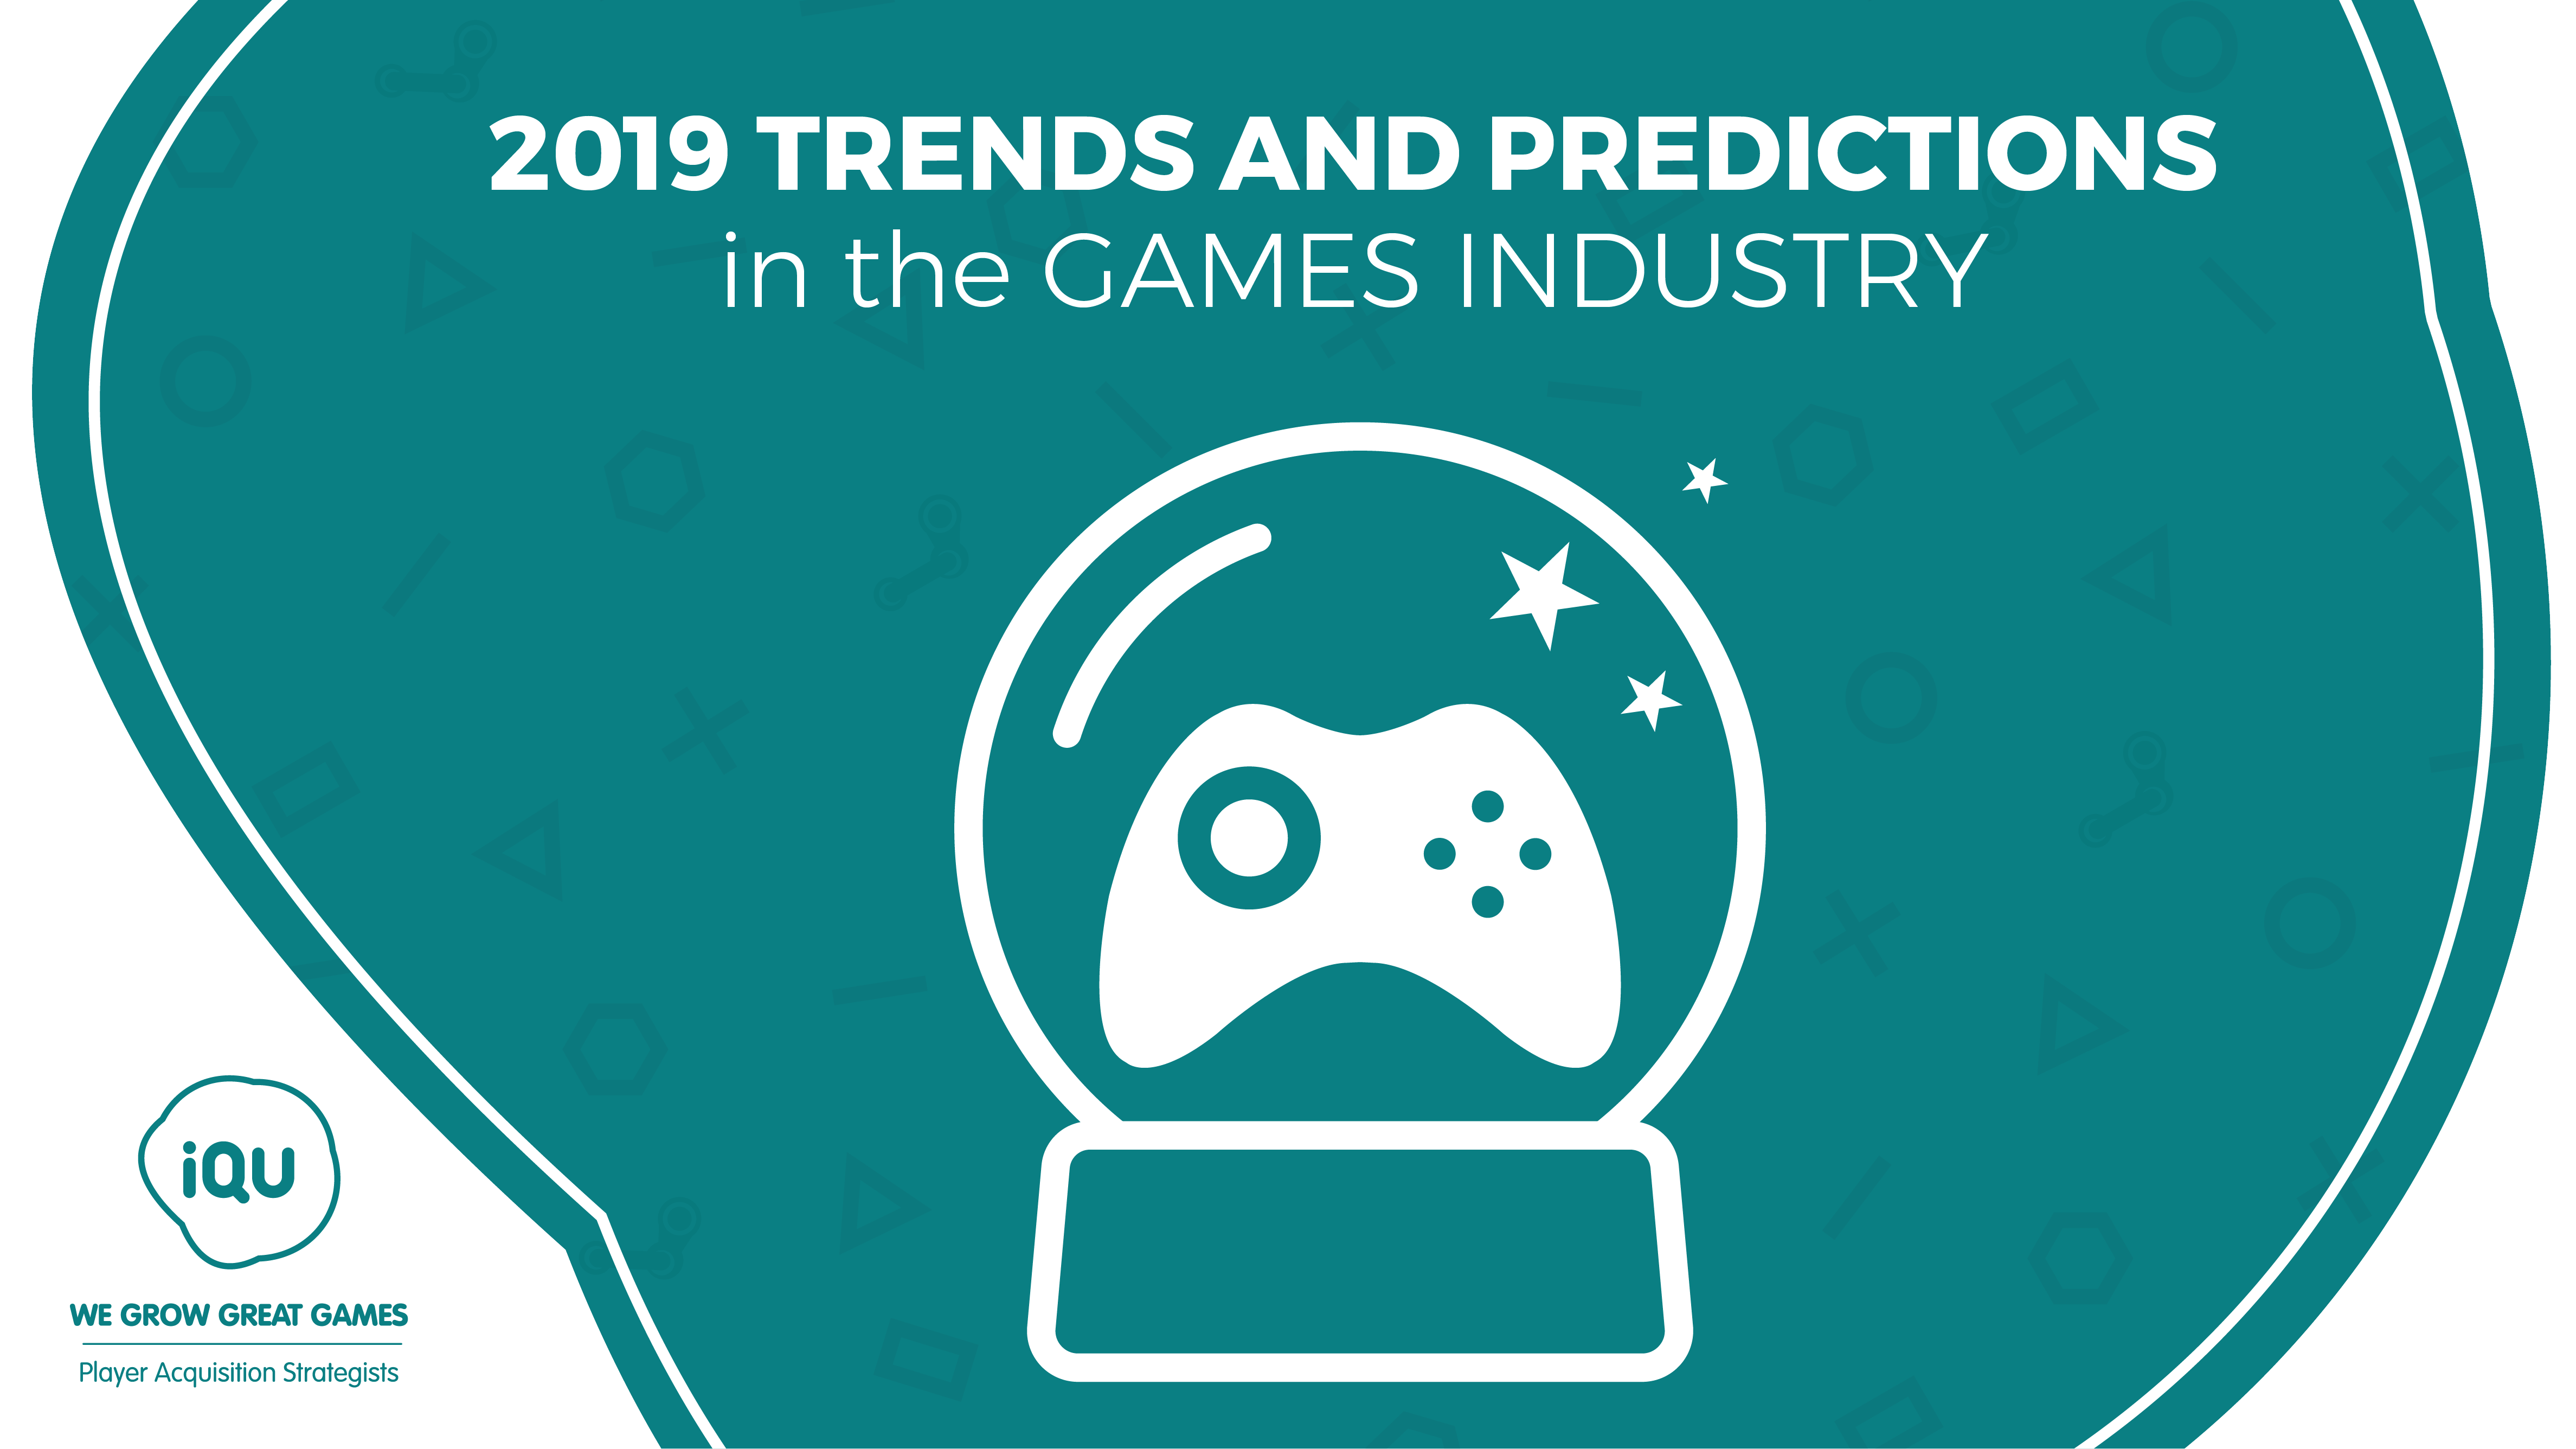 iQU's trends and predictions for what is to come in relation to the gaming industry in 2019